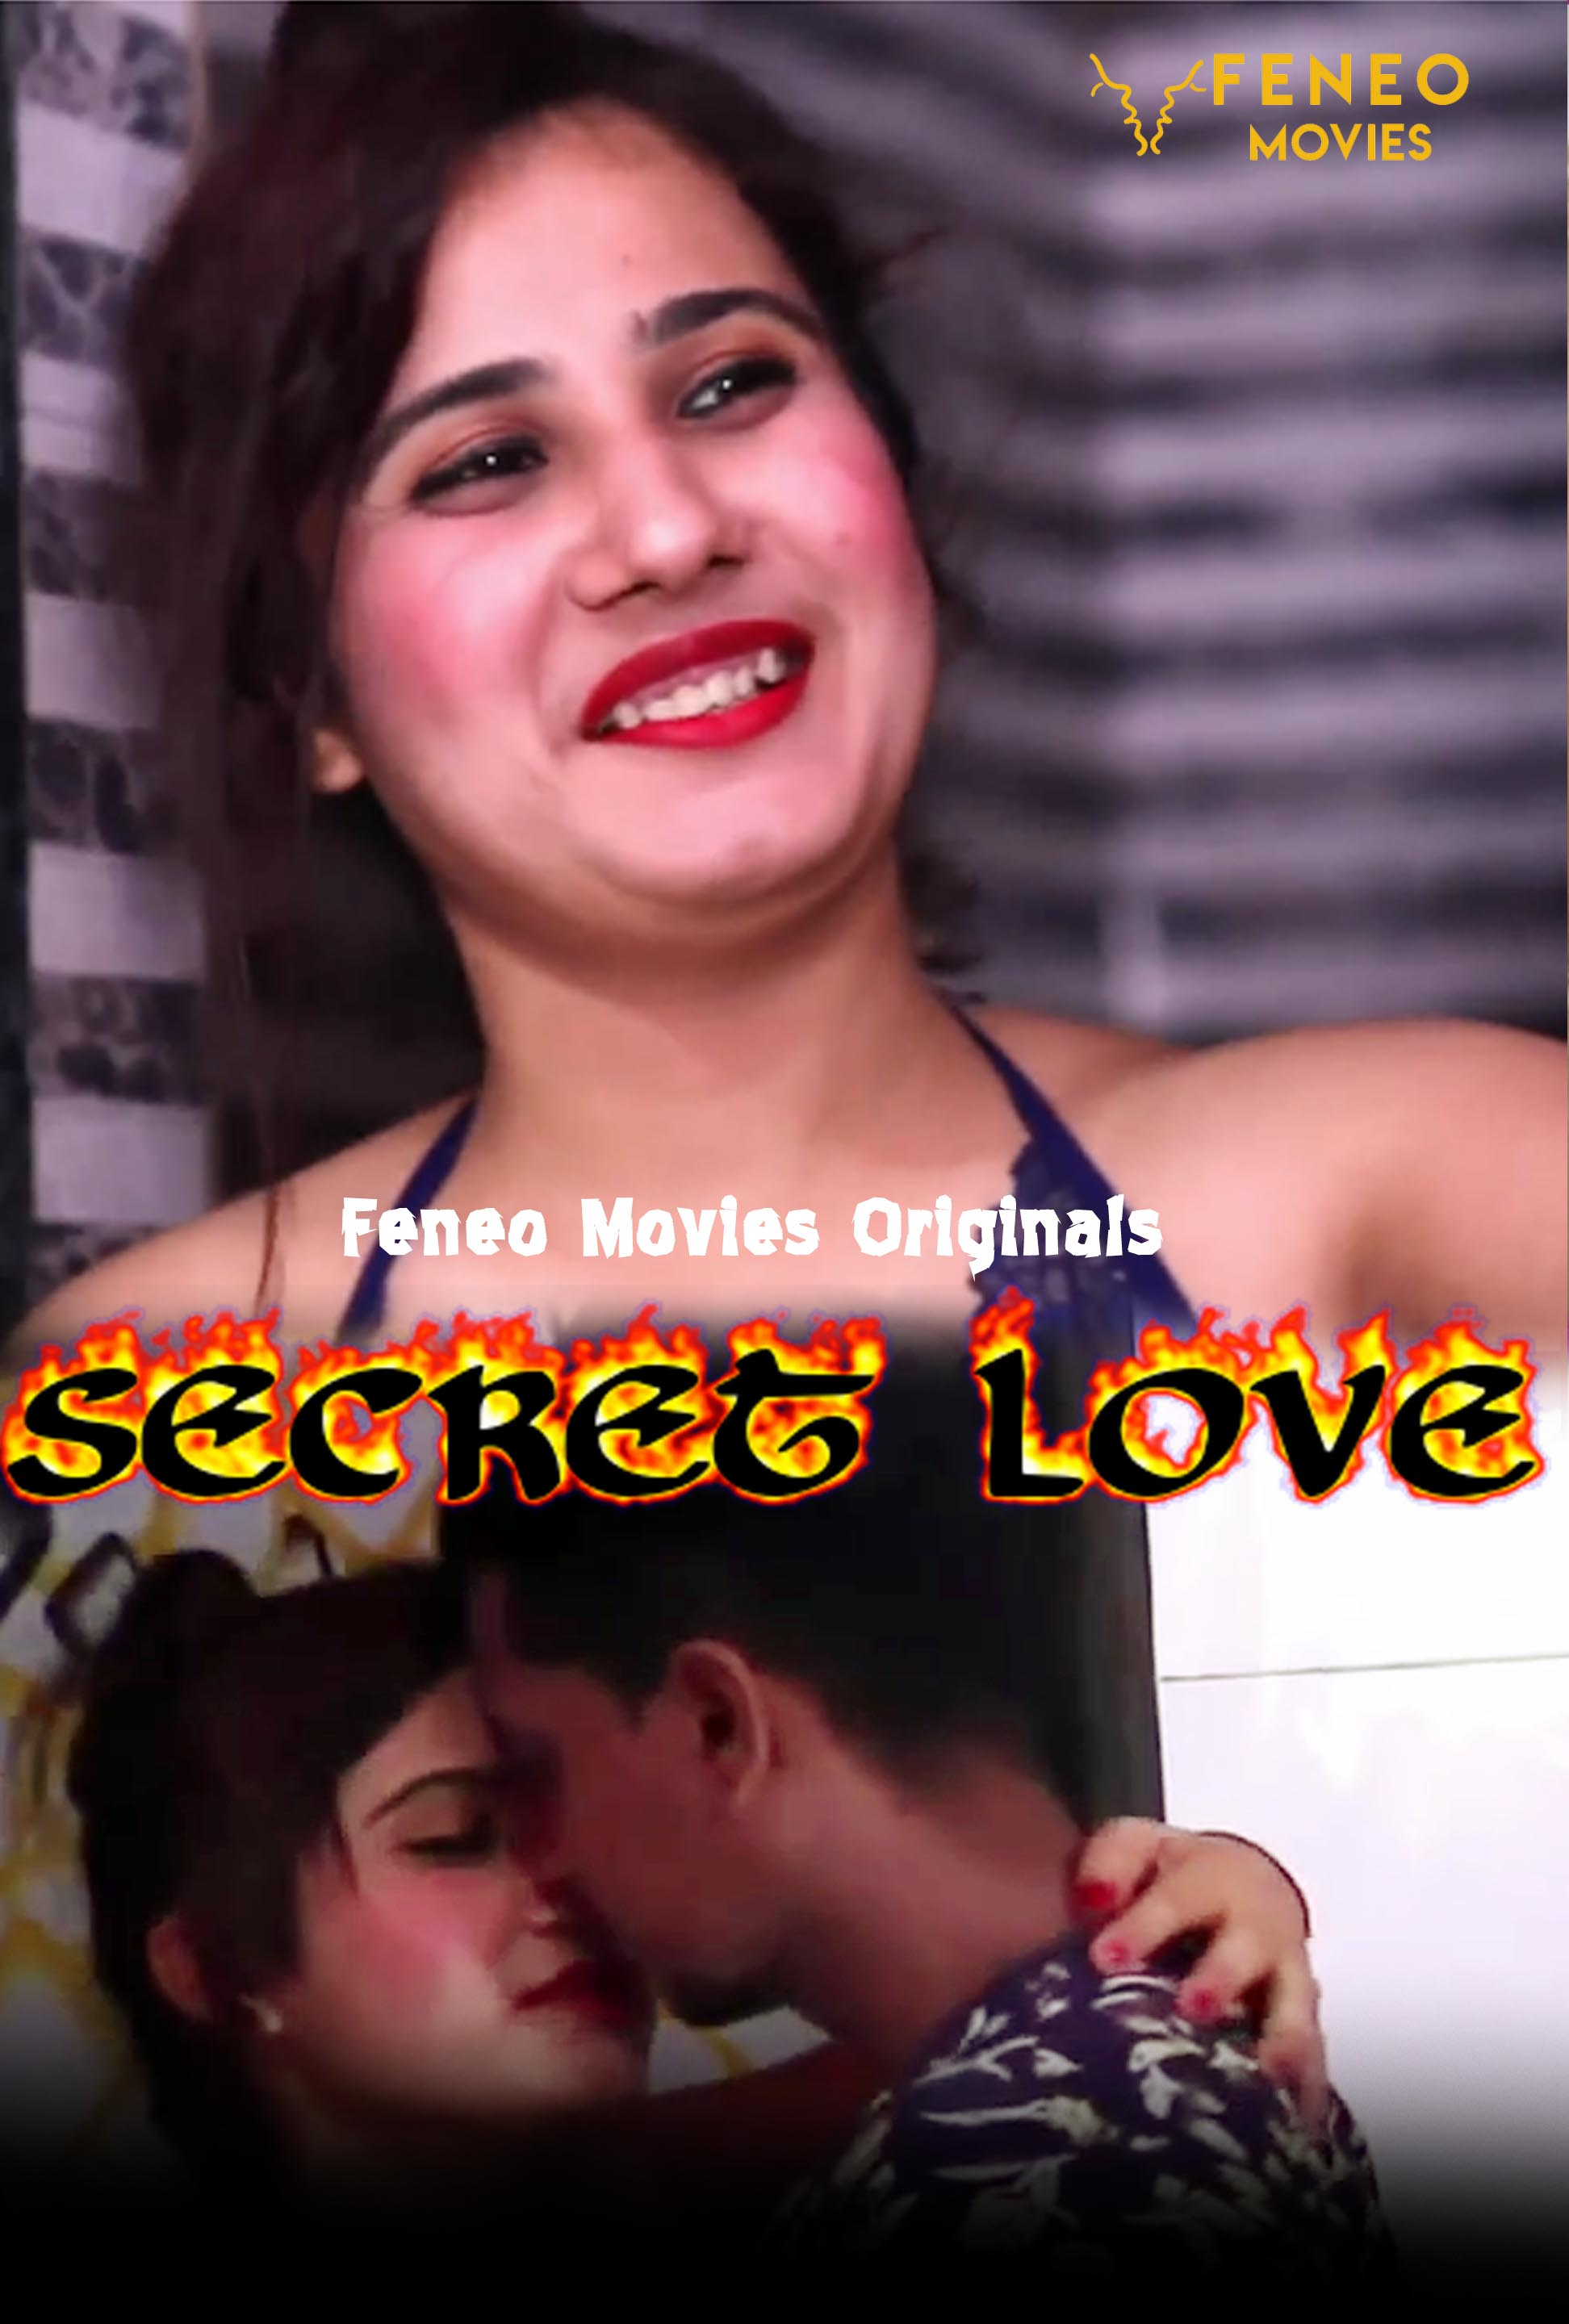 18+ Secret Love 2020 S01E02 Hindi Feneomovies Original Web Series 720p HDRip 200MB x264 AAC